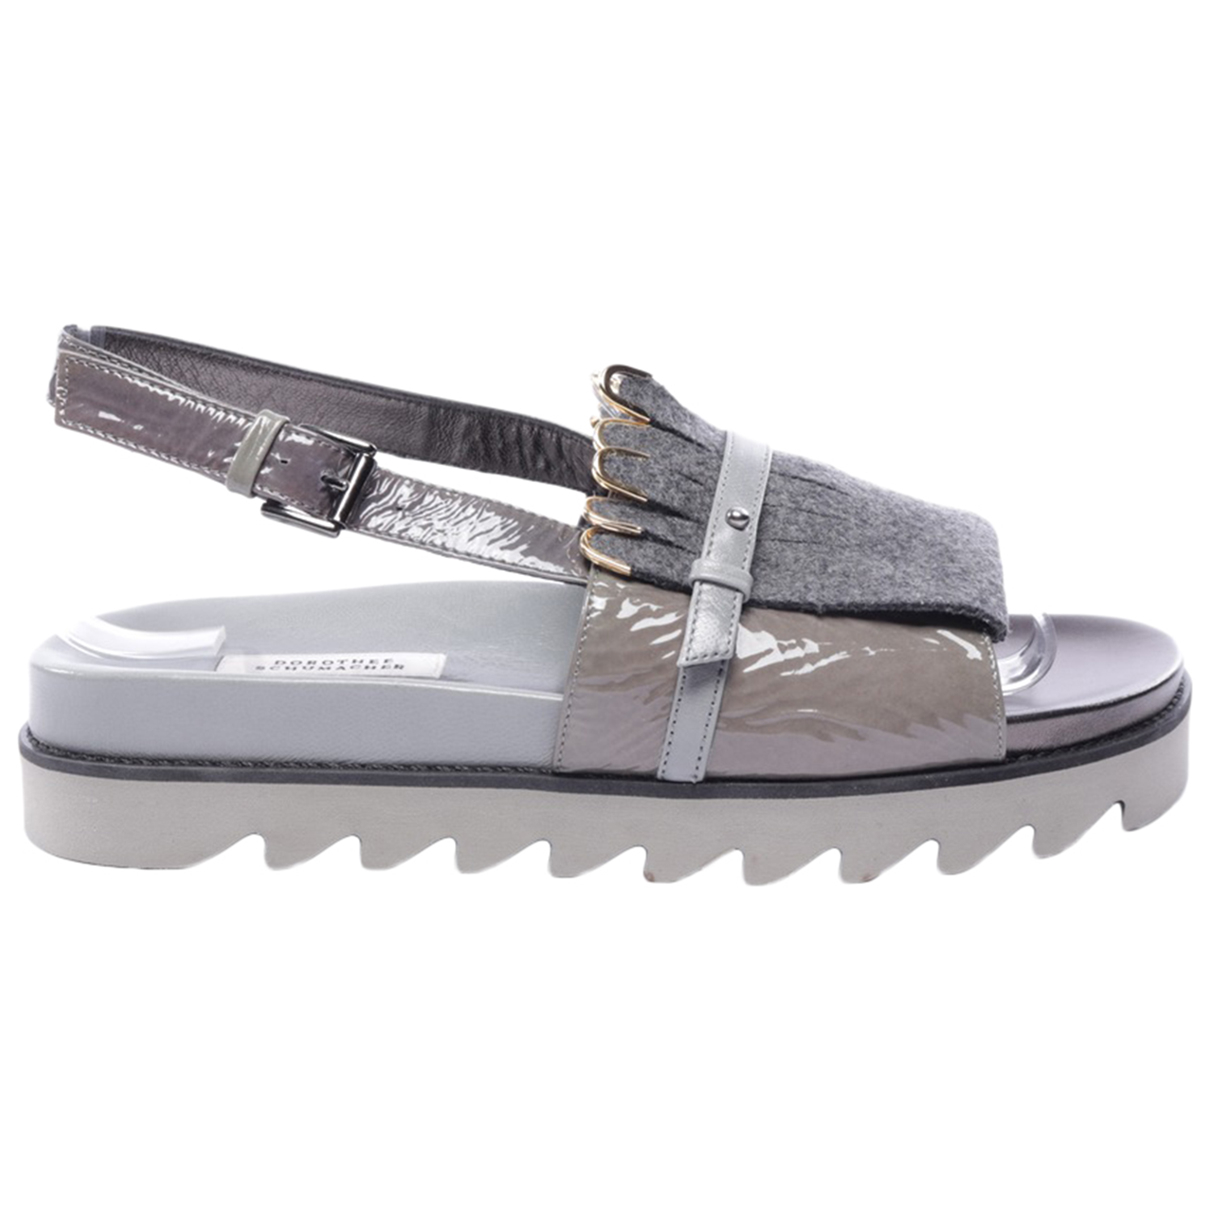 Dorothee Schumacher N Grey Leather Sandals for Women 37 EU